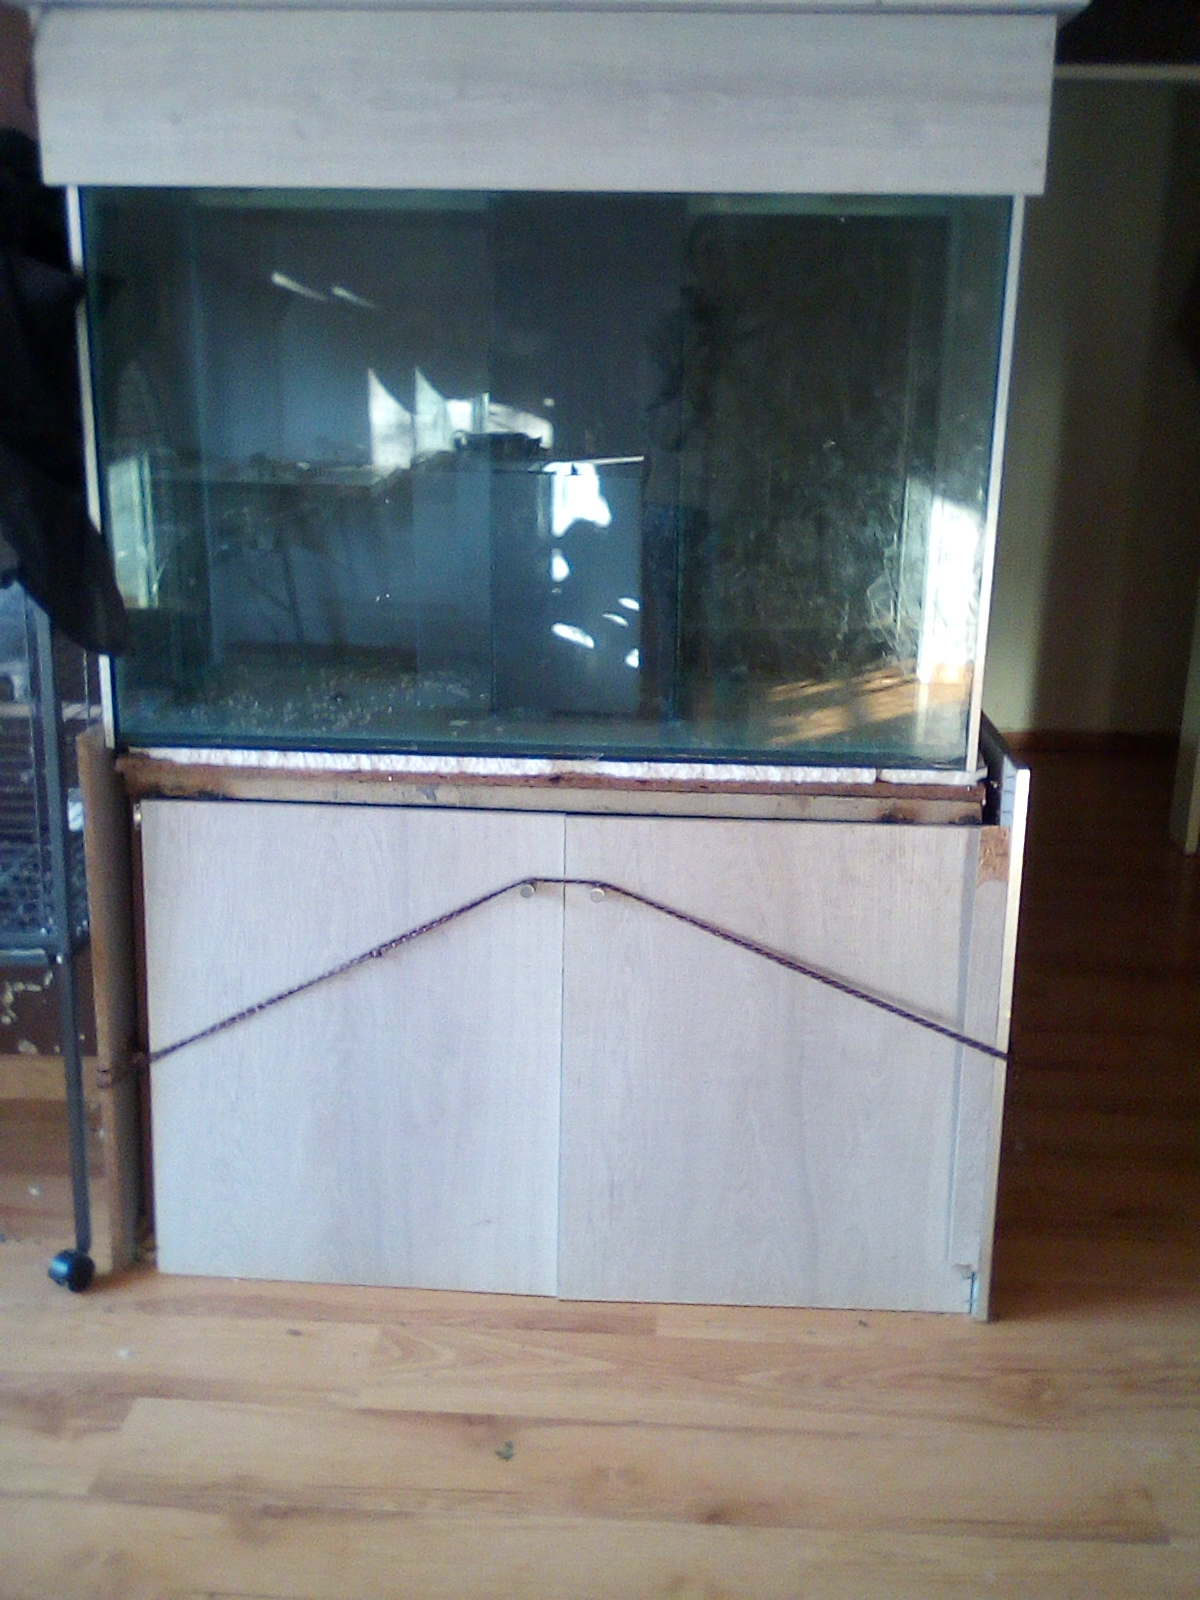 Fish tank, perfect for marine. Has internal filter, not leaking